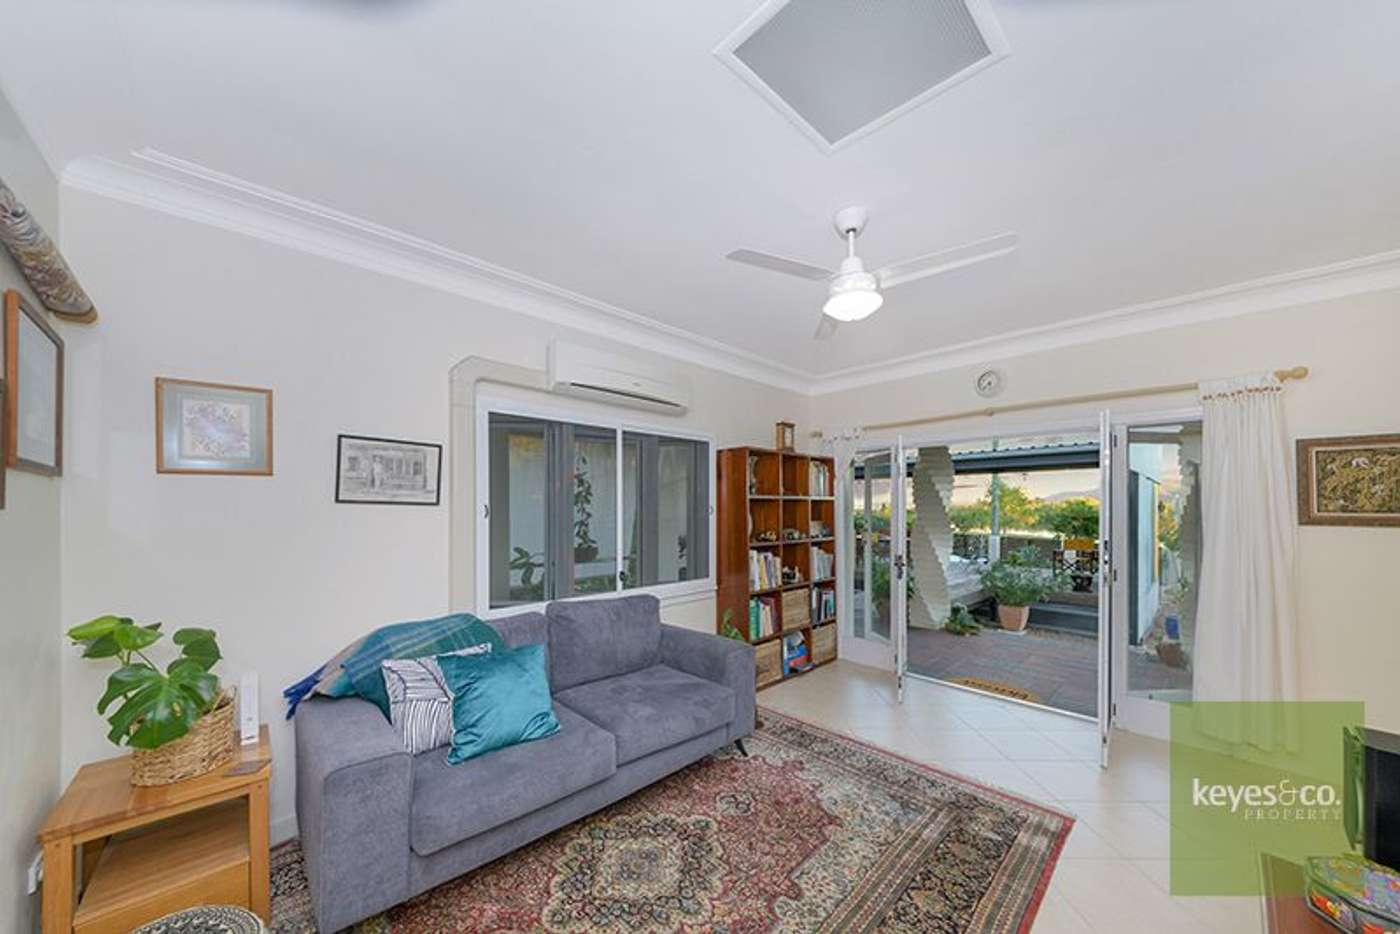 Fifth view of Homely house listing, 14 Cameron Street, Railway Estate QLD 4810